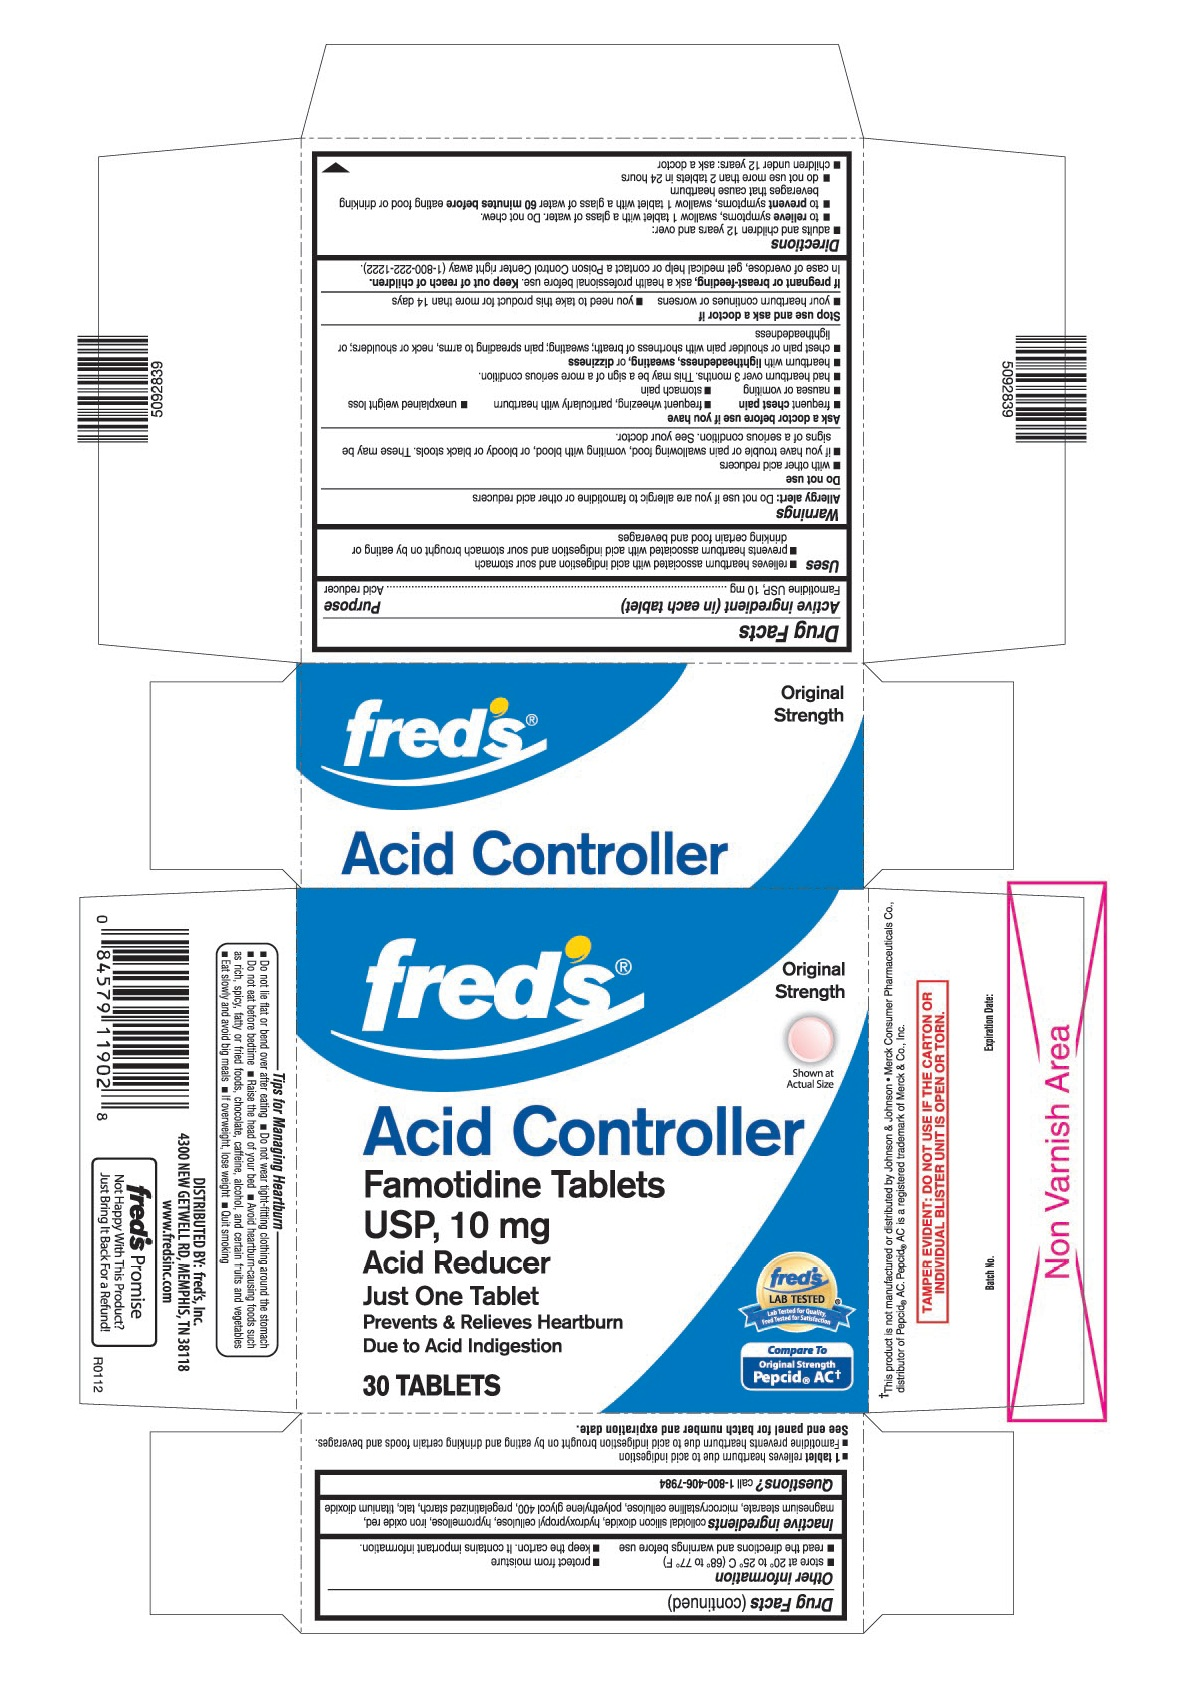 This is the 30 count blister carton label for Fred's Famotidine tablets USP, 10 mg.